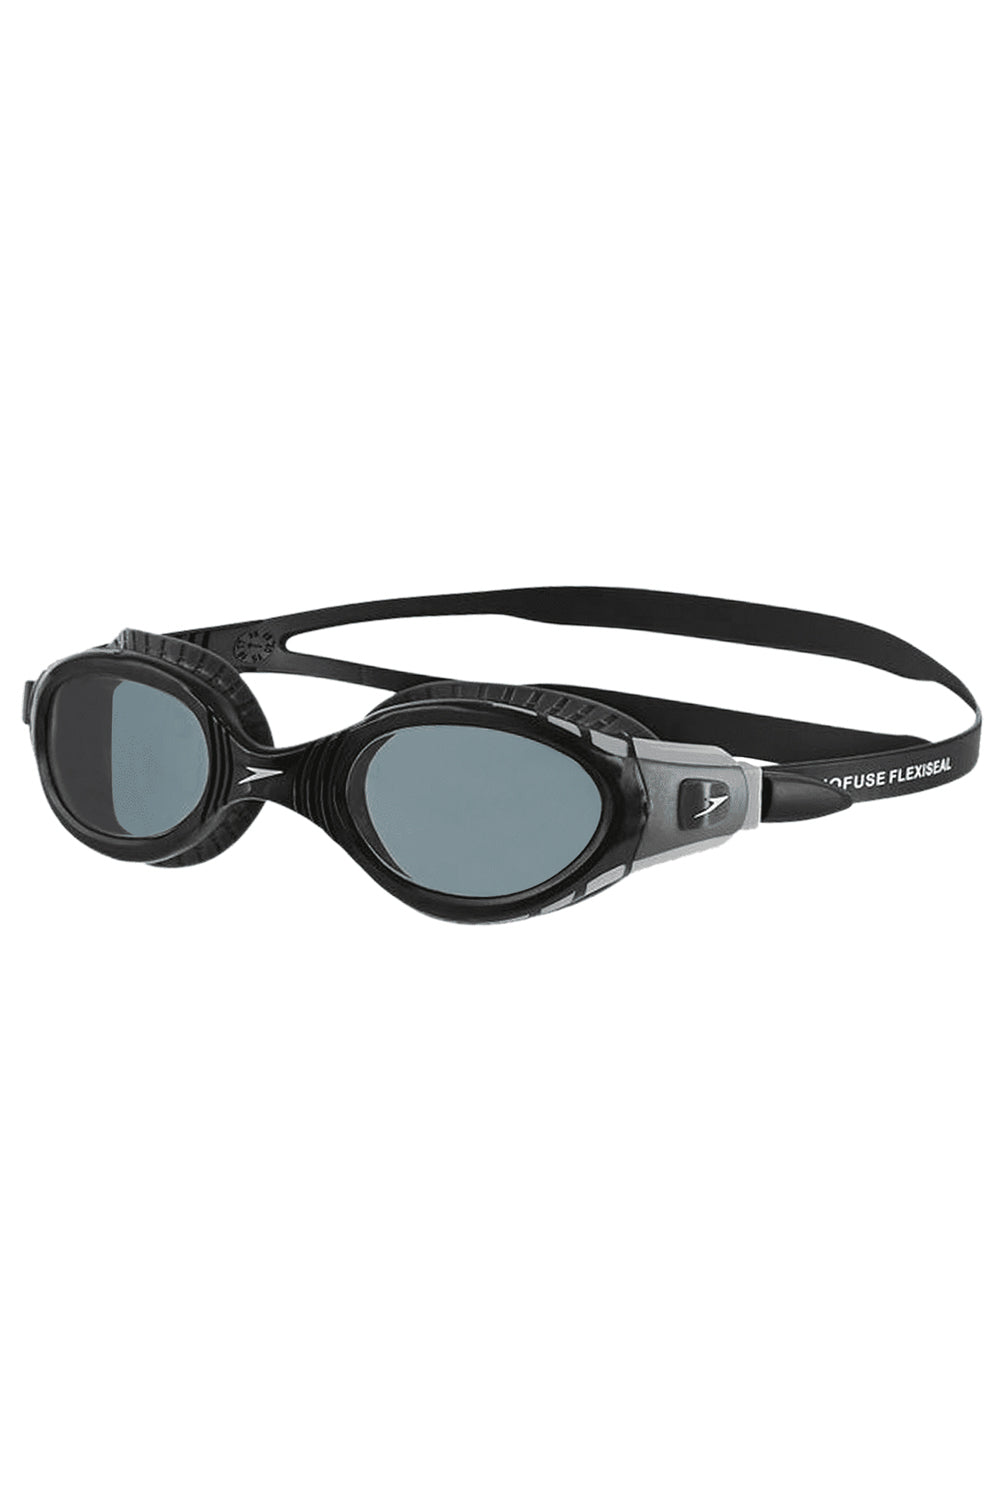 Speedo Futura Biofuse Googles - Adult